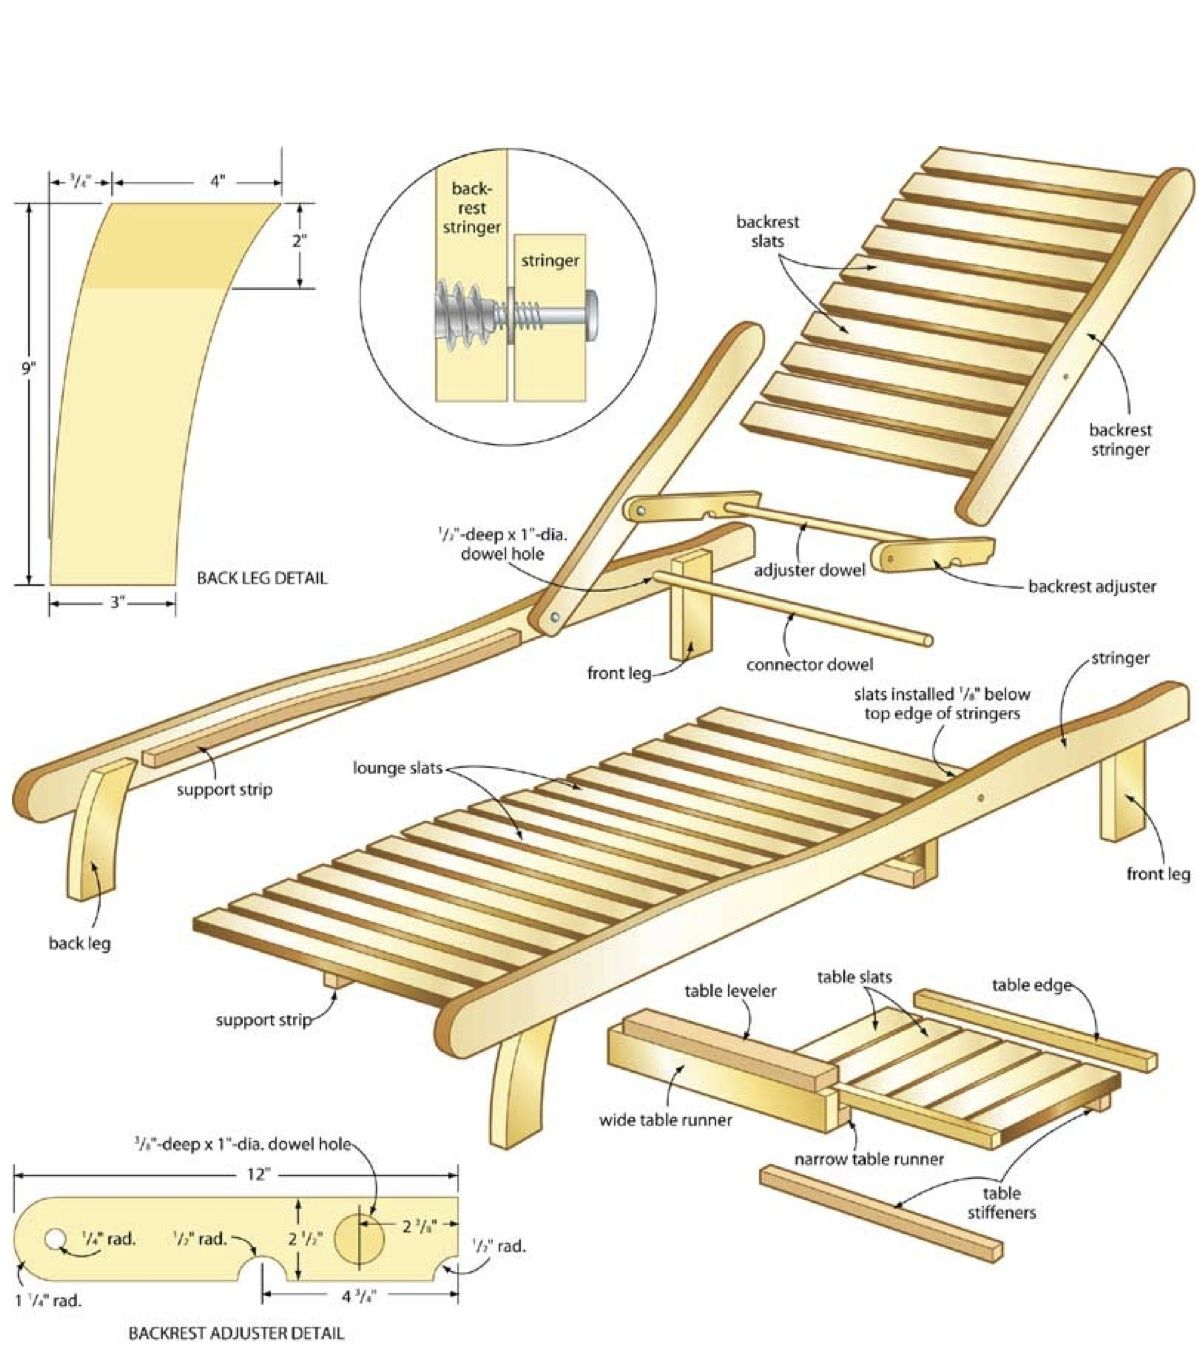 Wooden beach chair back - Wood Lawn Chairs Revenues Dynu Within Folding Wooden Beach Chair Plans Intended For Your